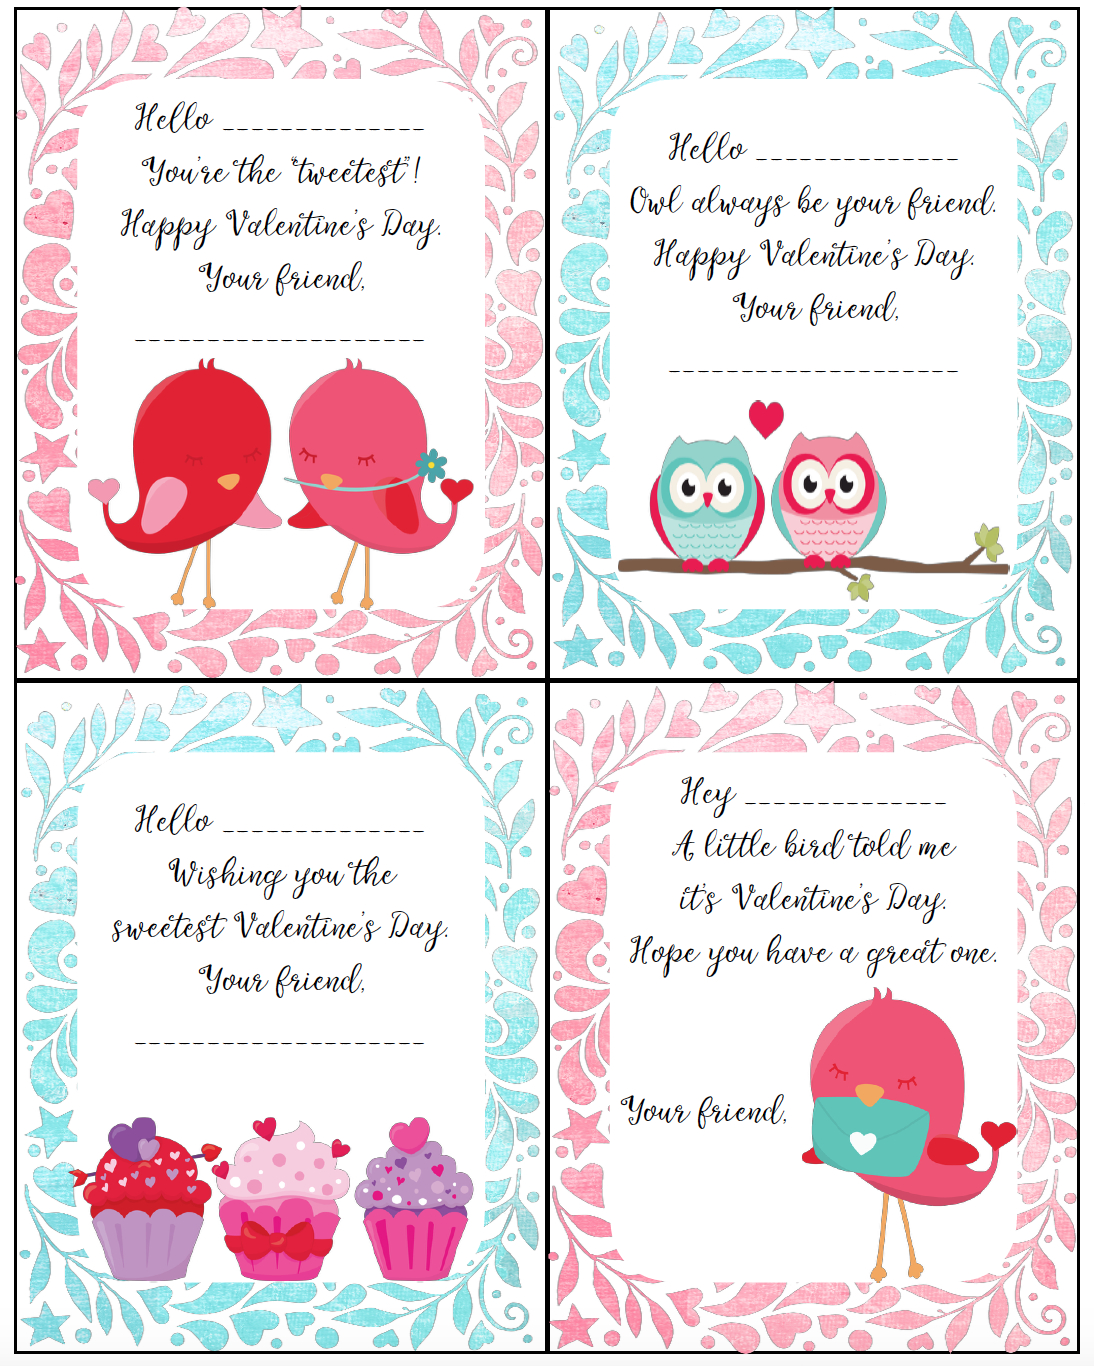 Free Printable Valentine's Day Cards For Kids - Free Printable Valentines Day Cards